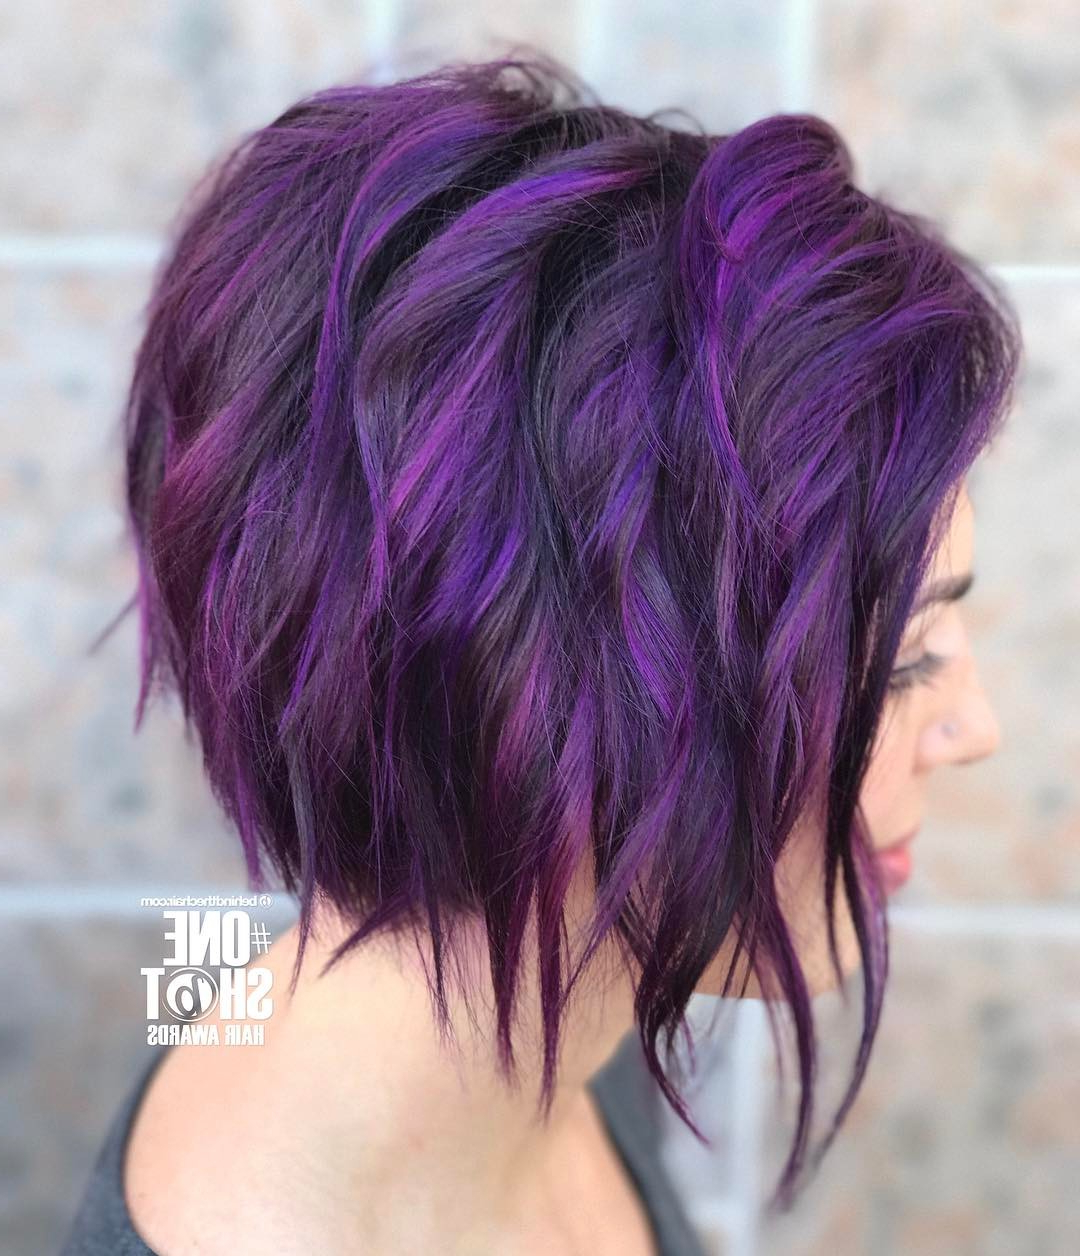 10 Chic Short Bob Haircuts That Balance Your Face Shape! Inside 2019 Purple Pixies Bob Braid Hairstyles (View 1 of 20)